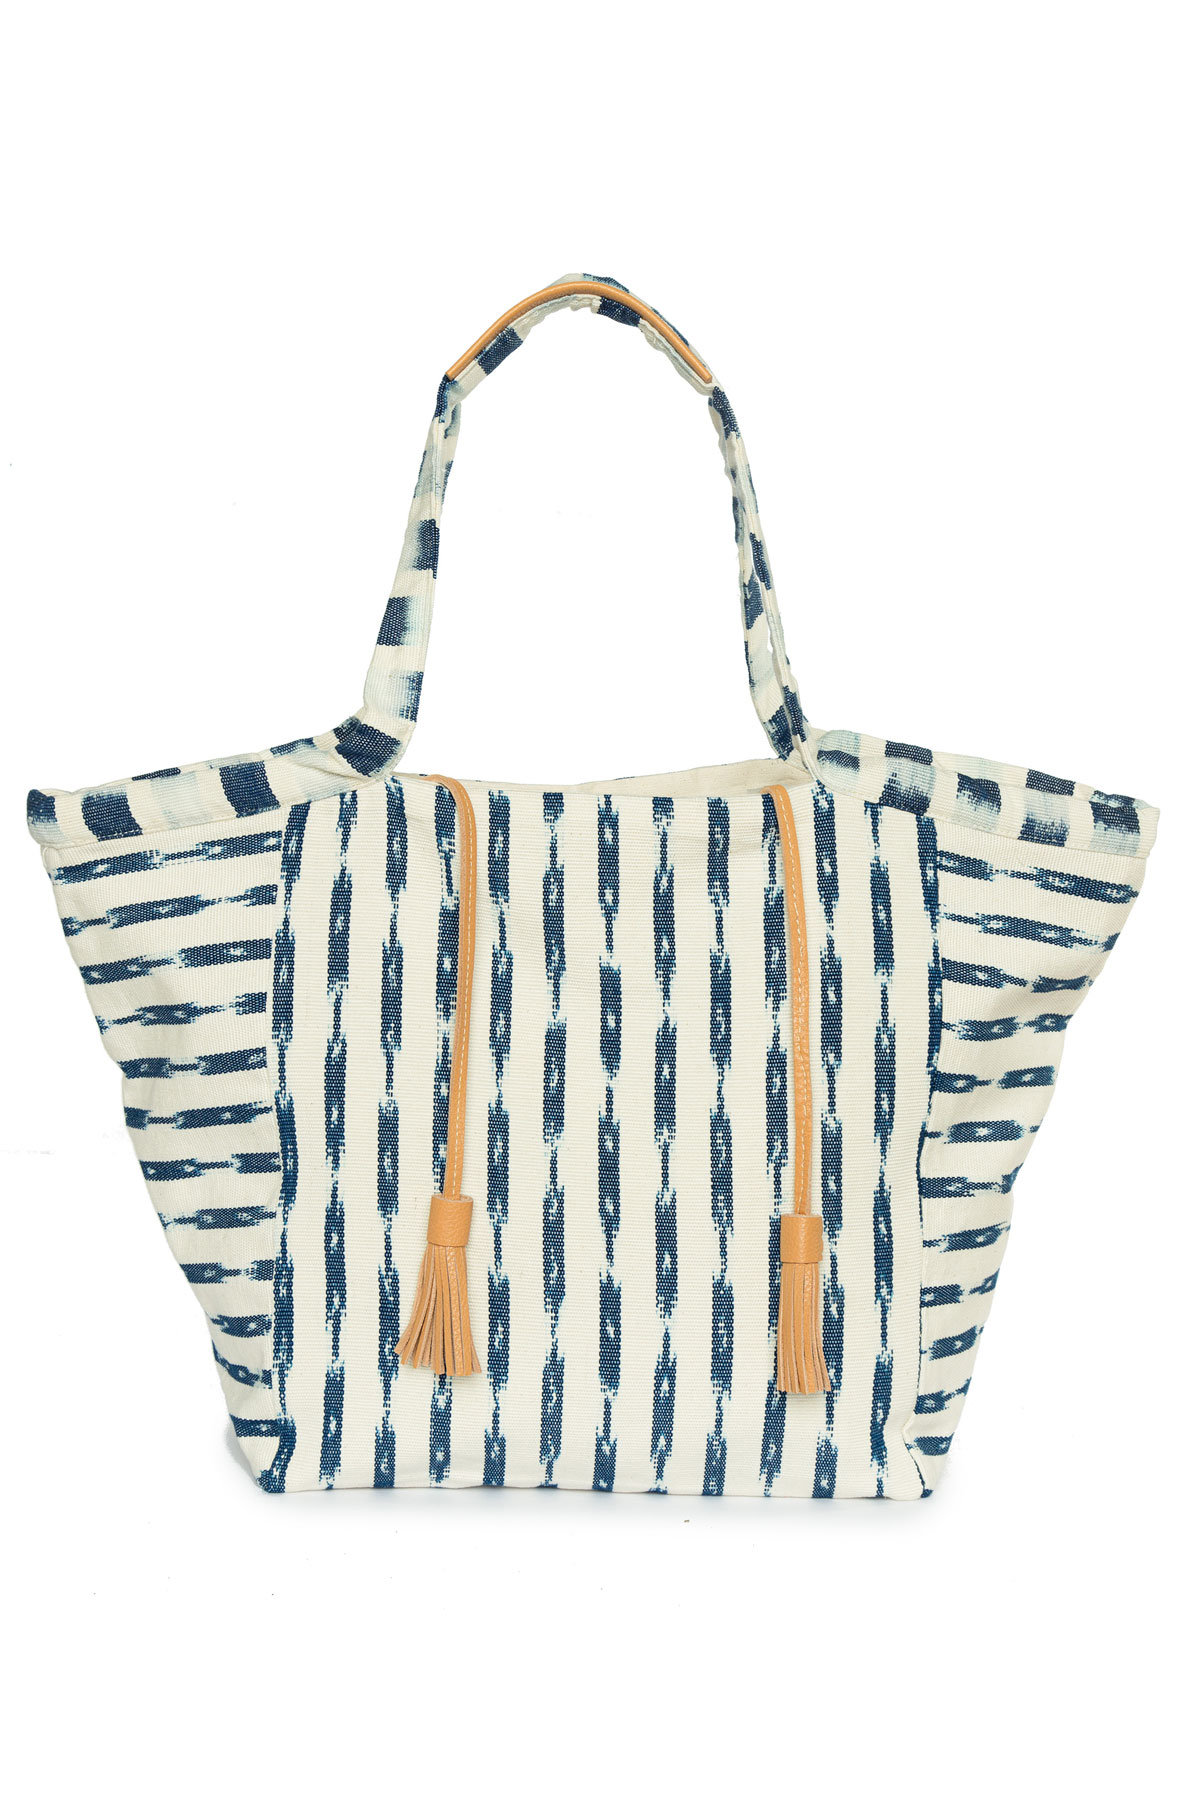 RosaI Ikat Leather Tassel Fabric Oversized Tote - Blue/White 1